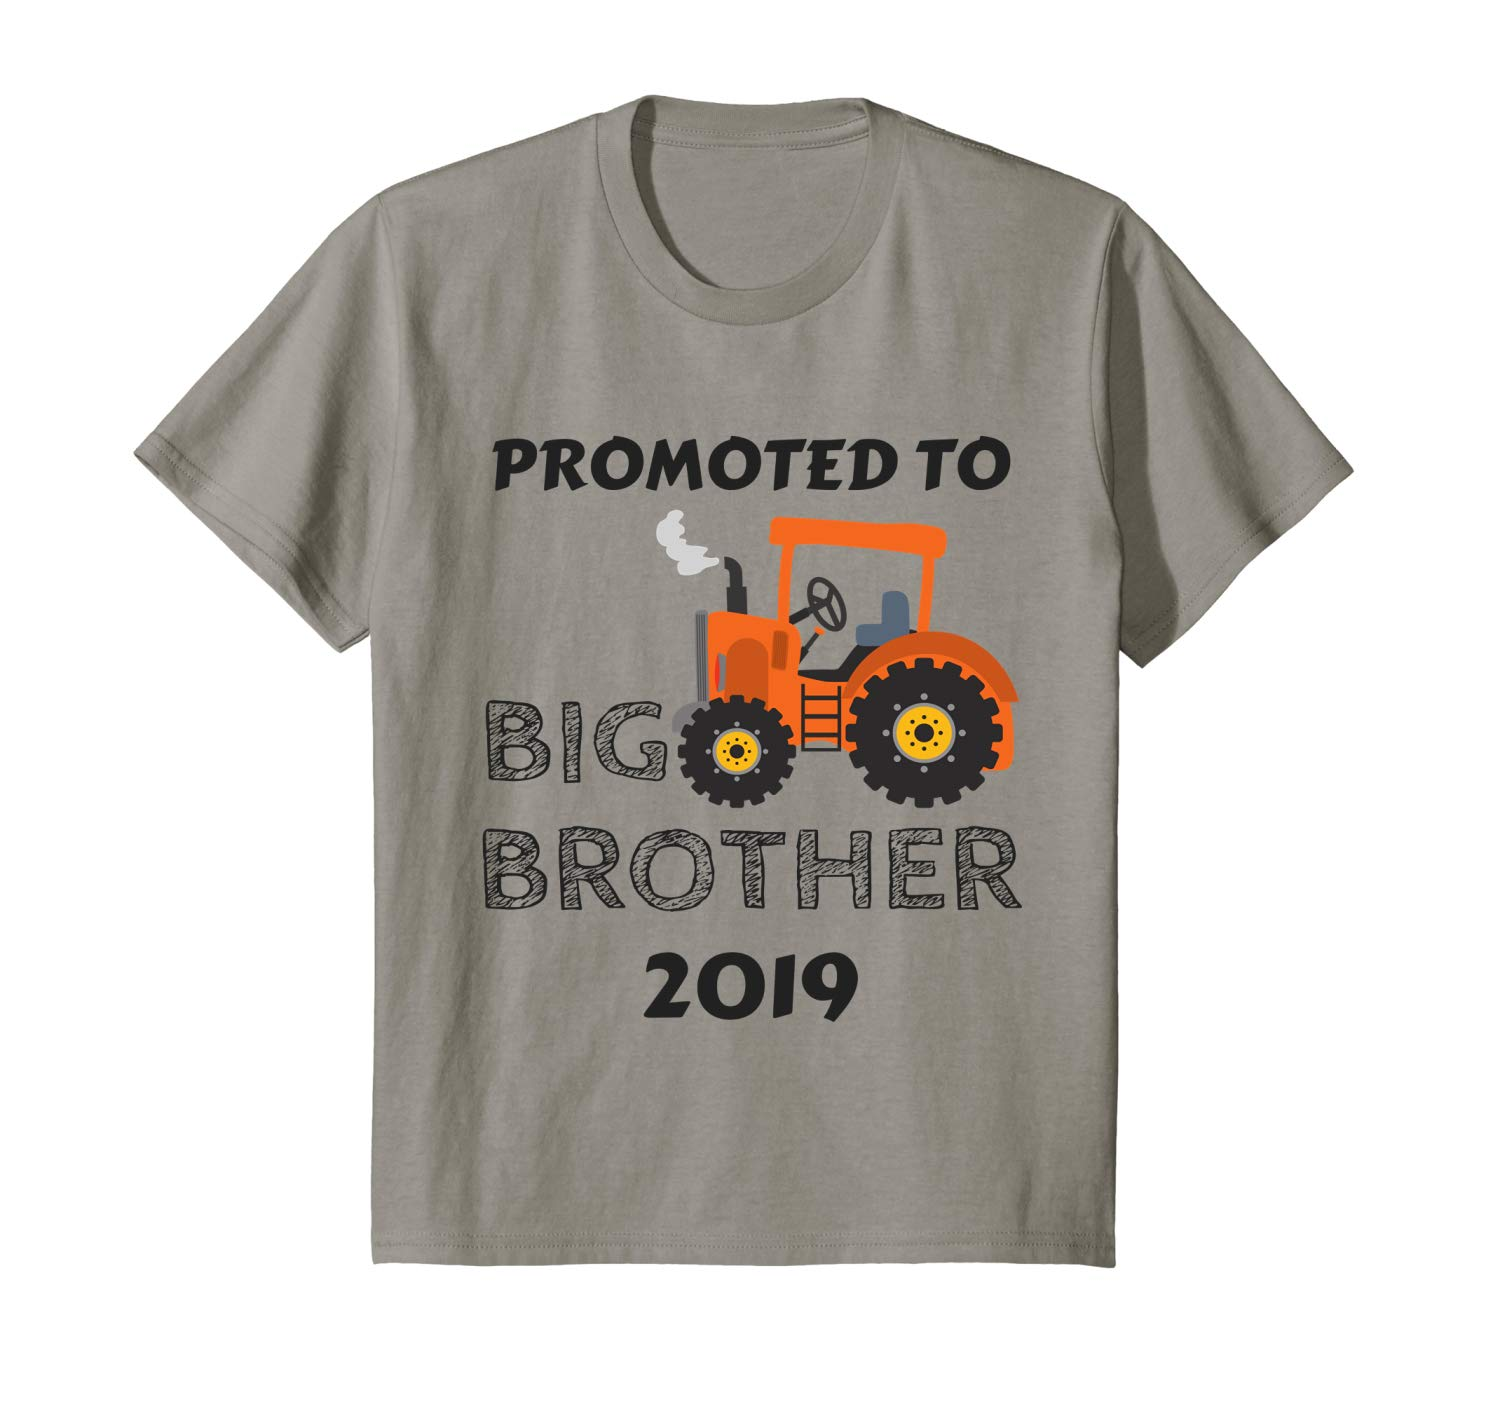 69a49bf5 Get Quotations · Kids Kids Promoted To Big Brother 2019 Shirt Tractor Boys  Toddler